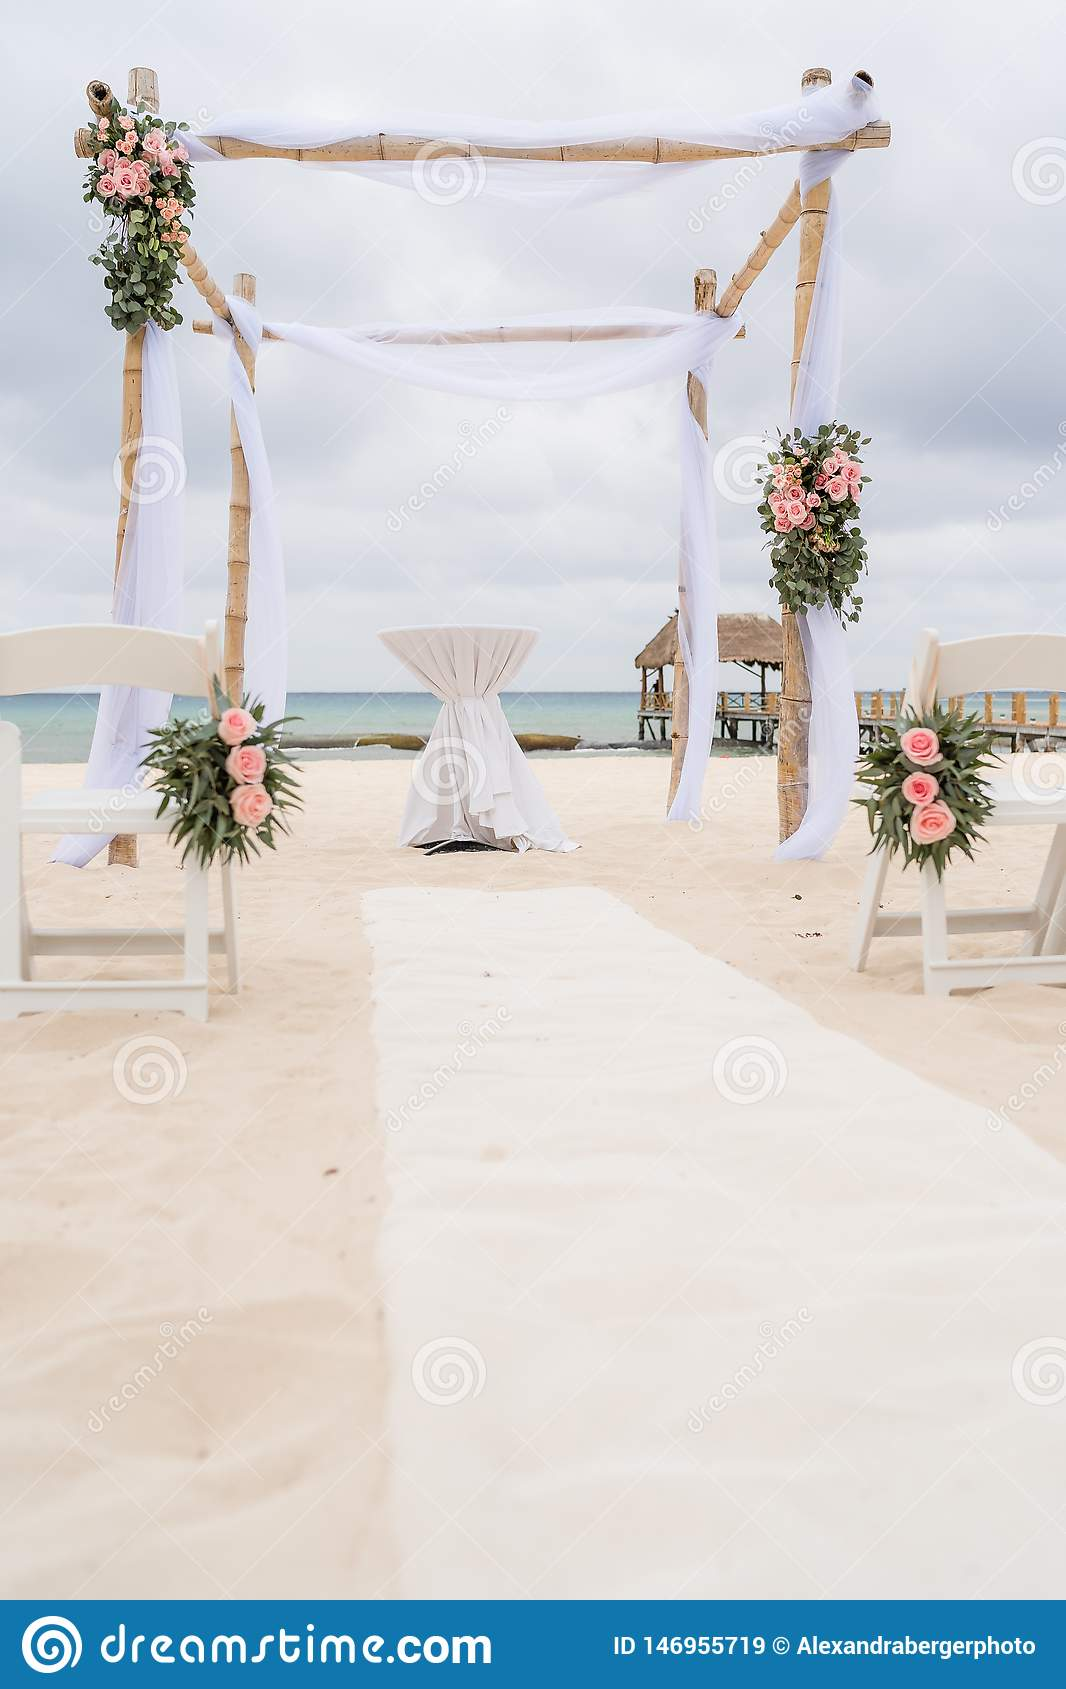 Romantic decoration of a pavilion of a beach wedding on the beach with sea in the background and cloudy sky